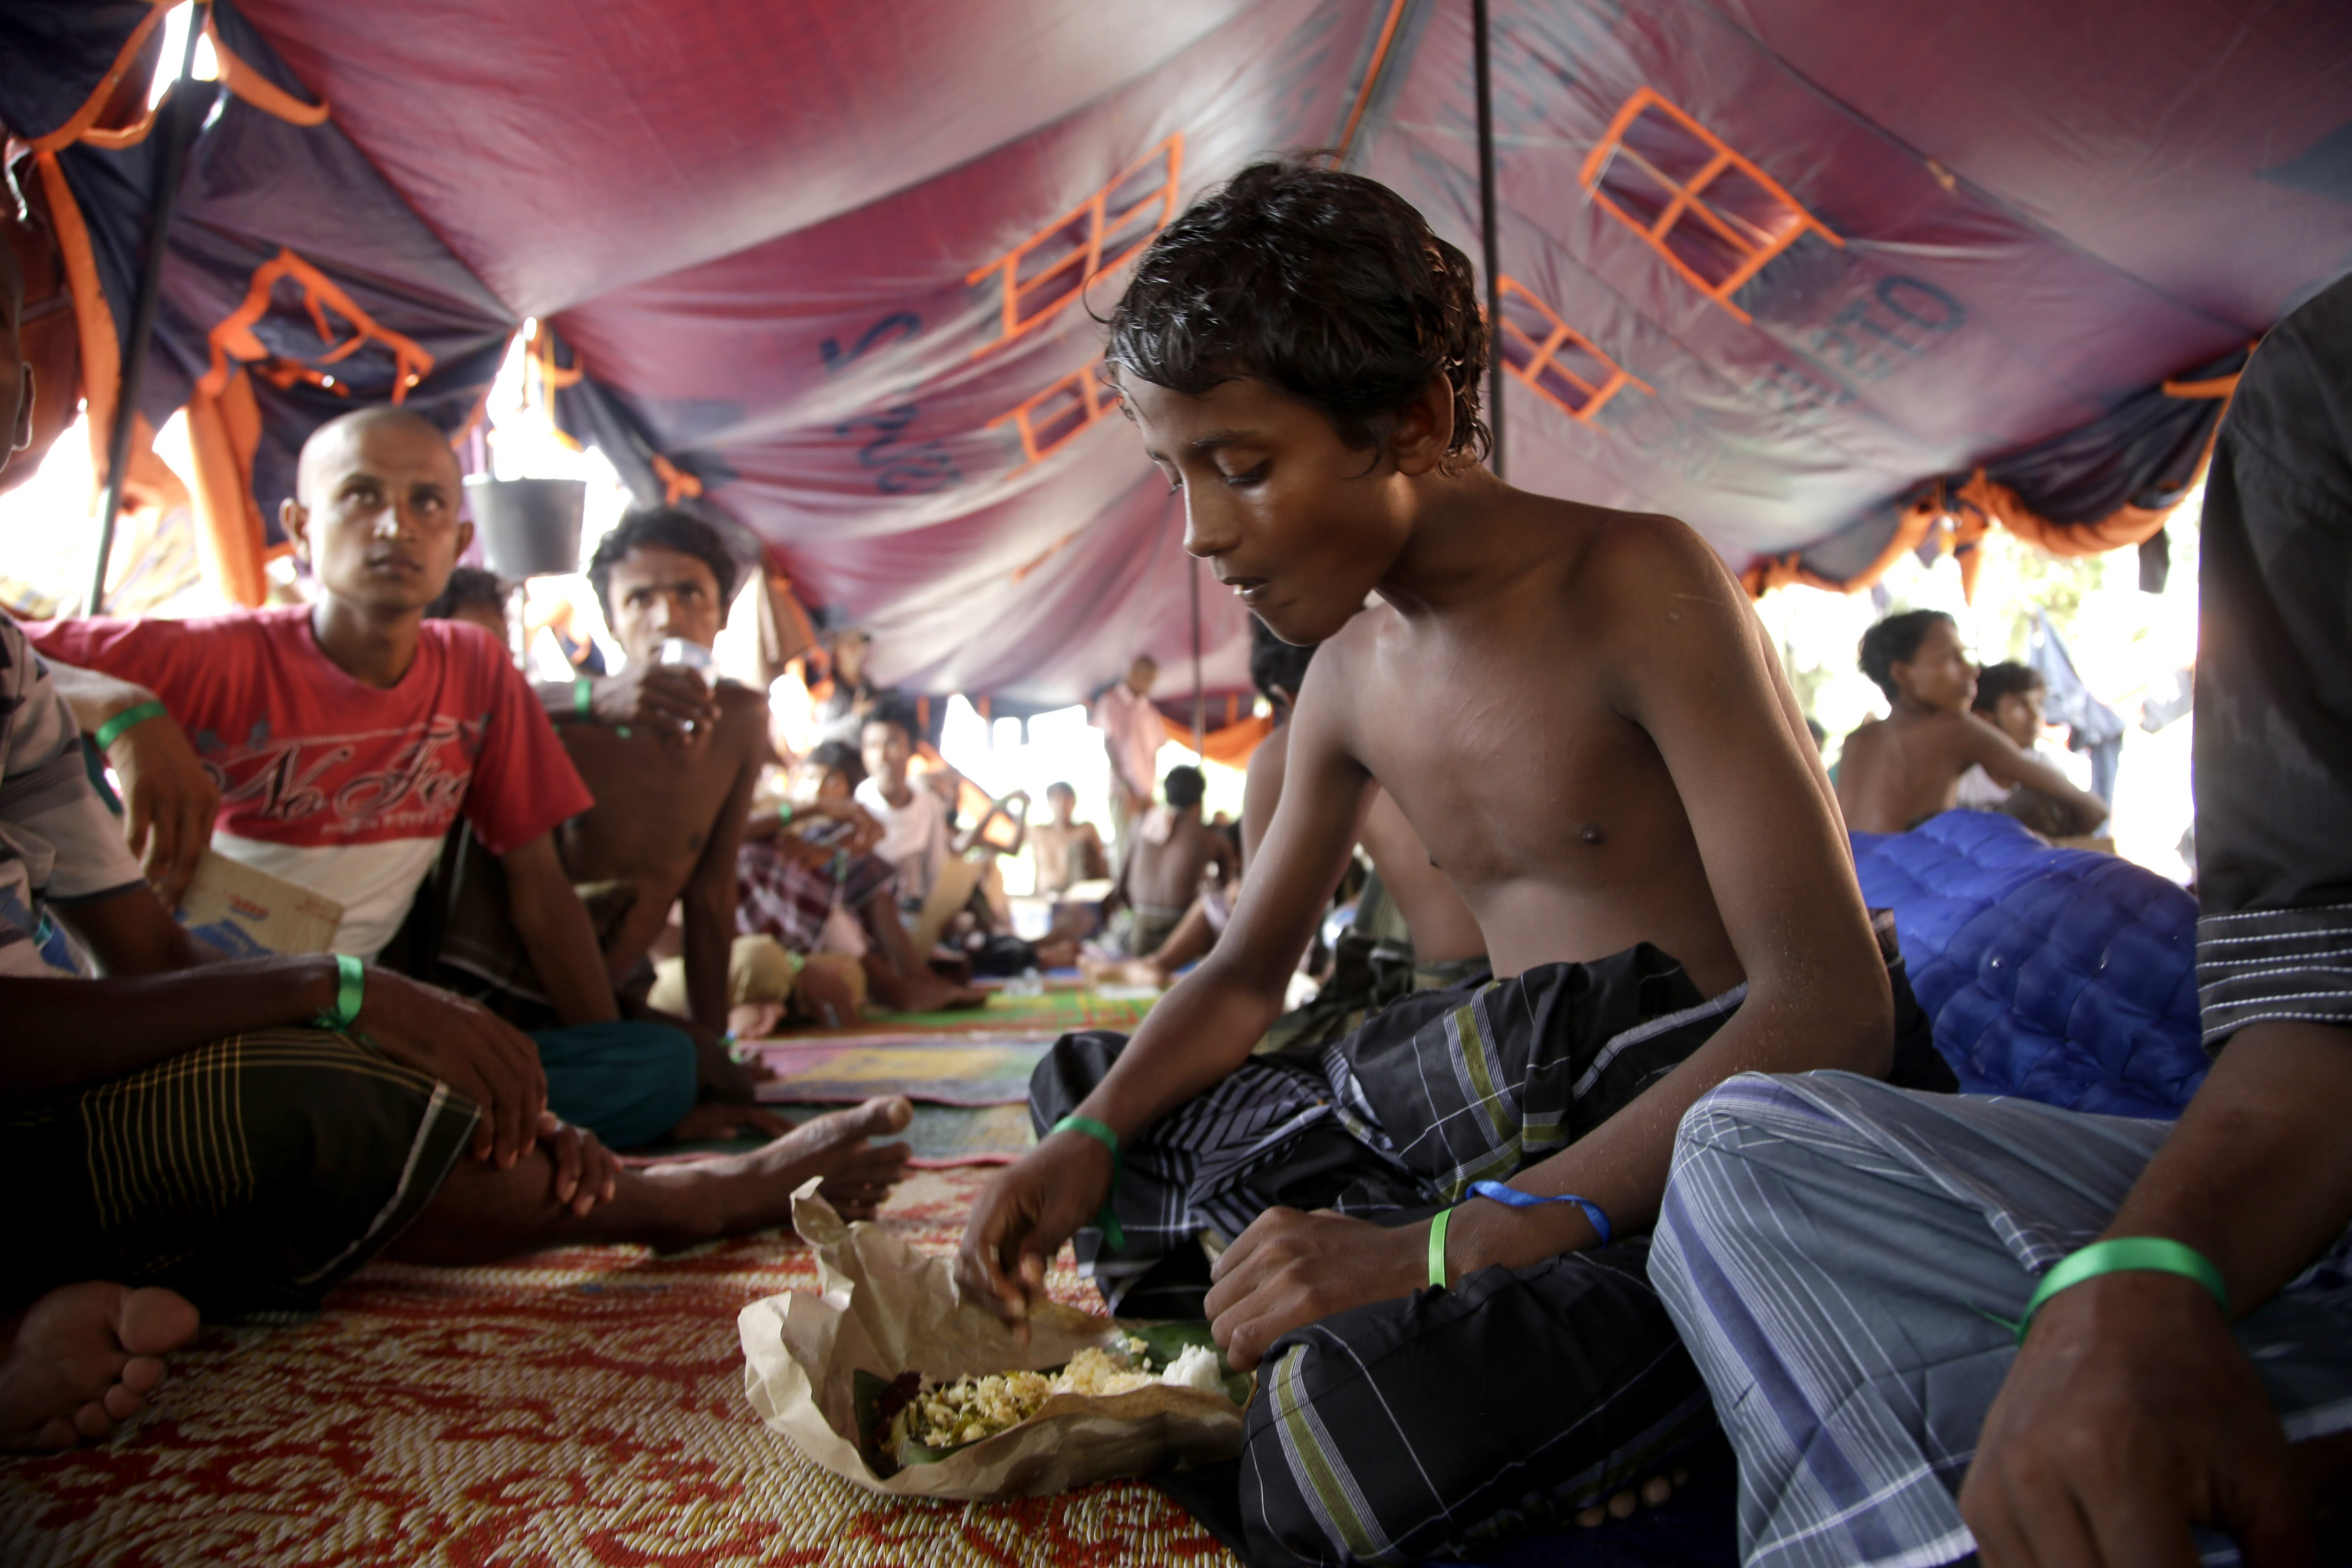 170 kids on their own among migrants to arrive in Indonesia